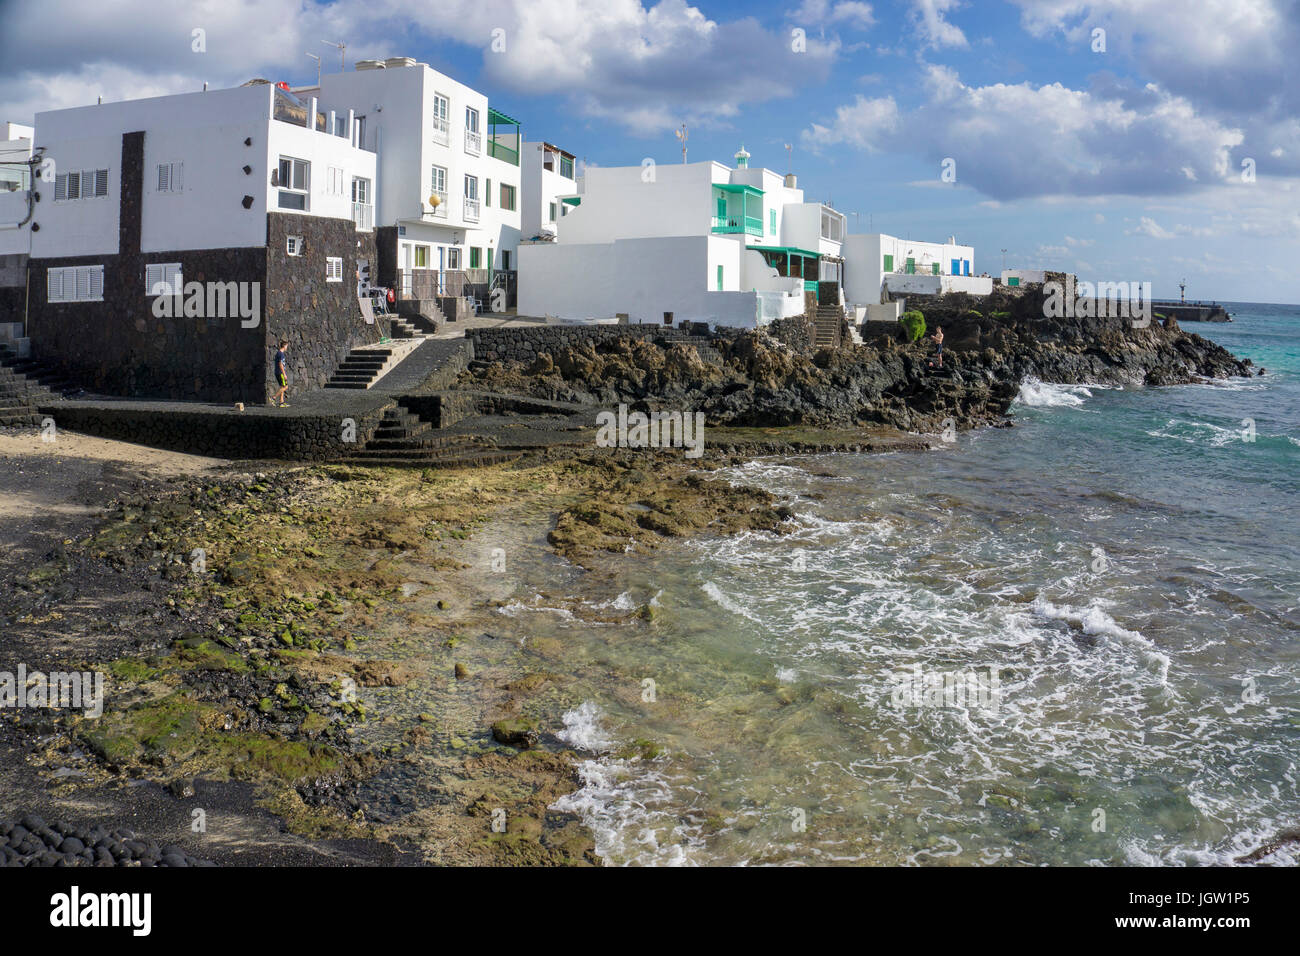 Typical canarian cube houses at Punta Mujeres, fishing village north of Lanzarote island, Canary islands, Spain, Stock Photo